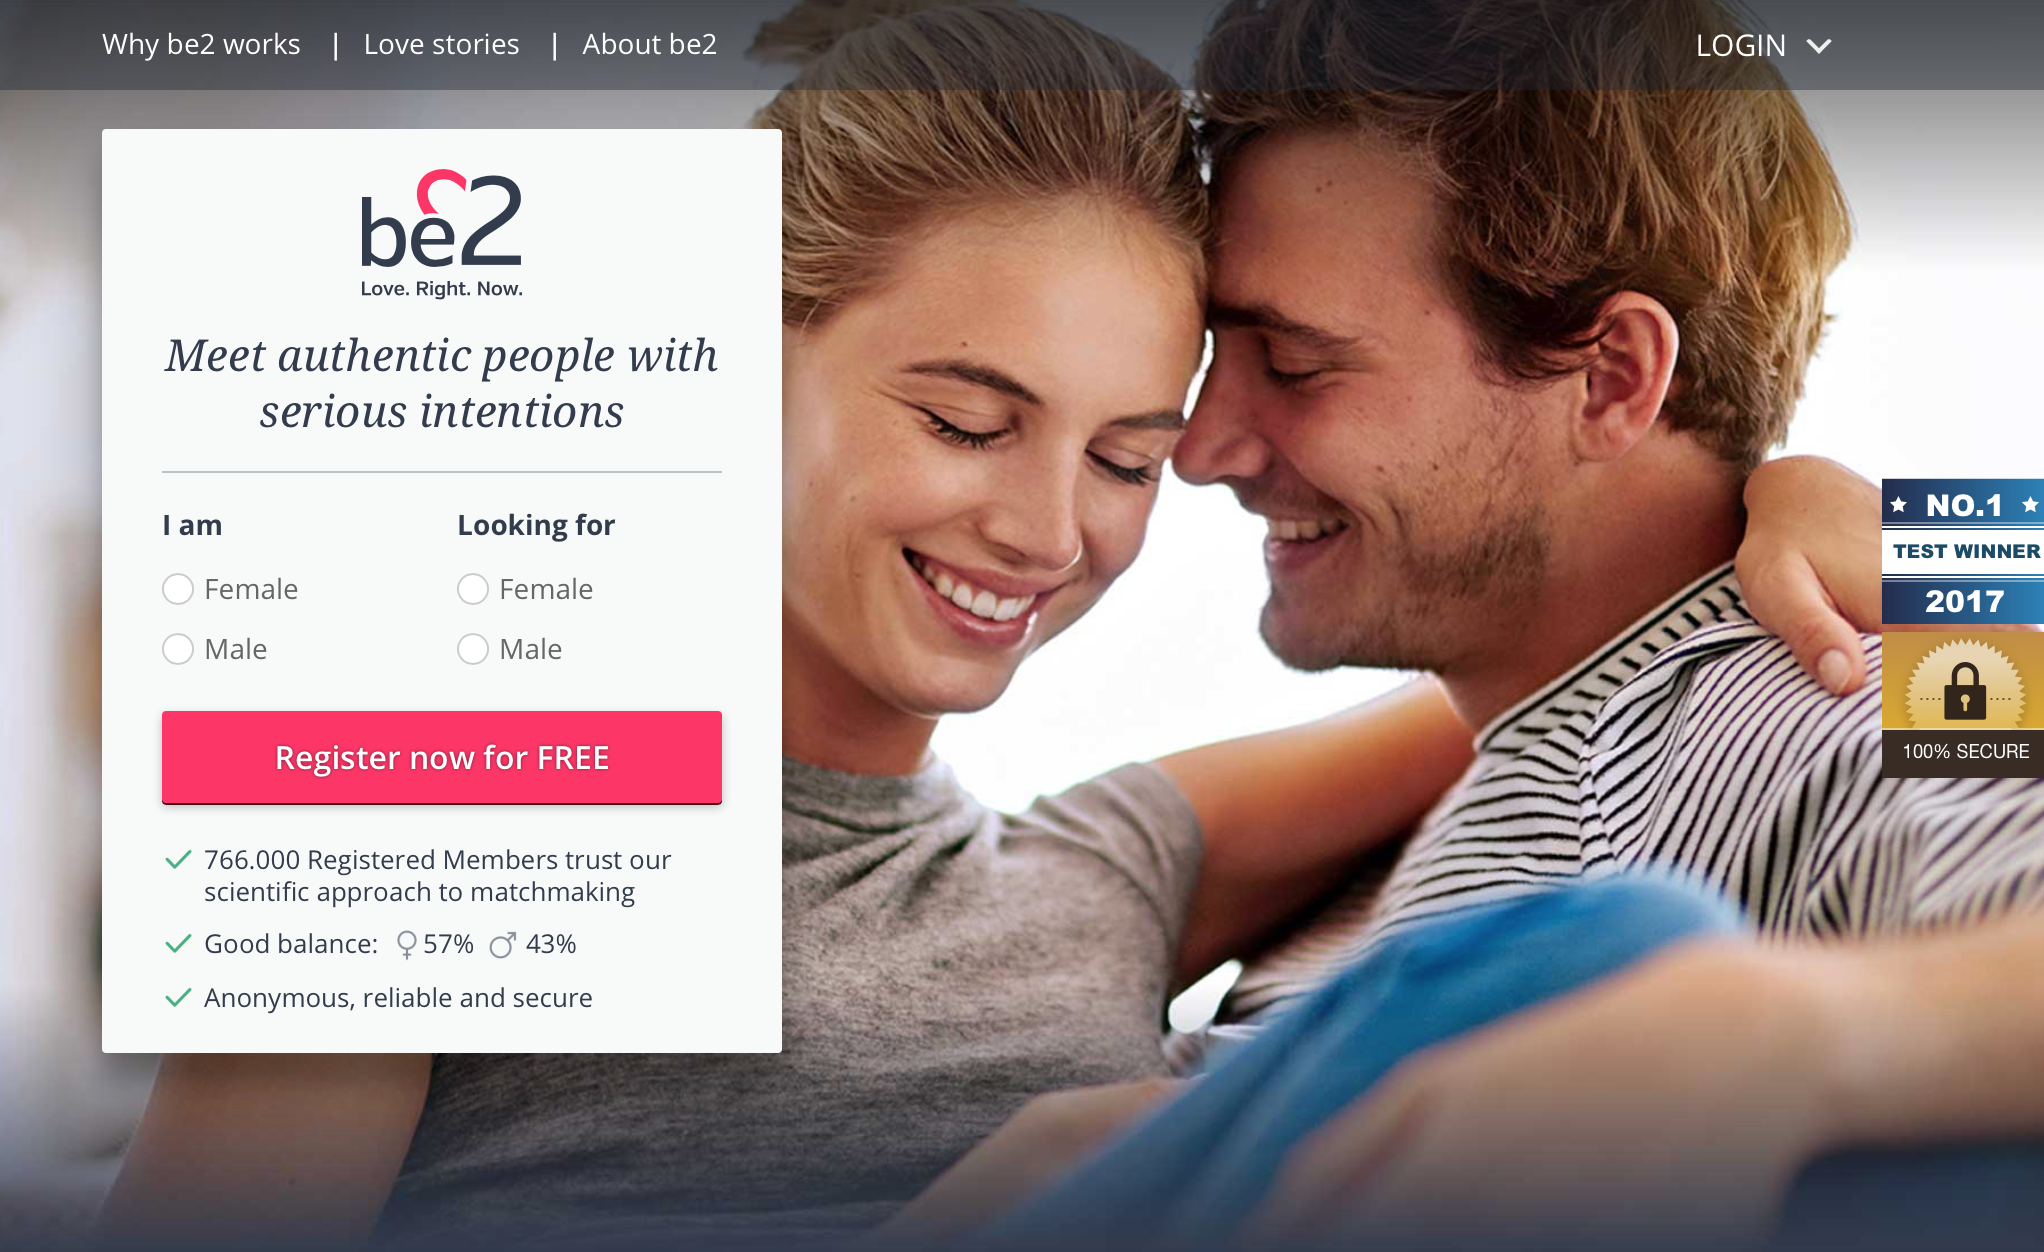 Owners Of be2 & C-date Partner With SecurionPay